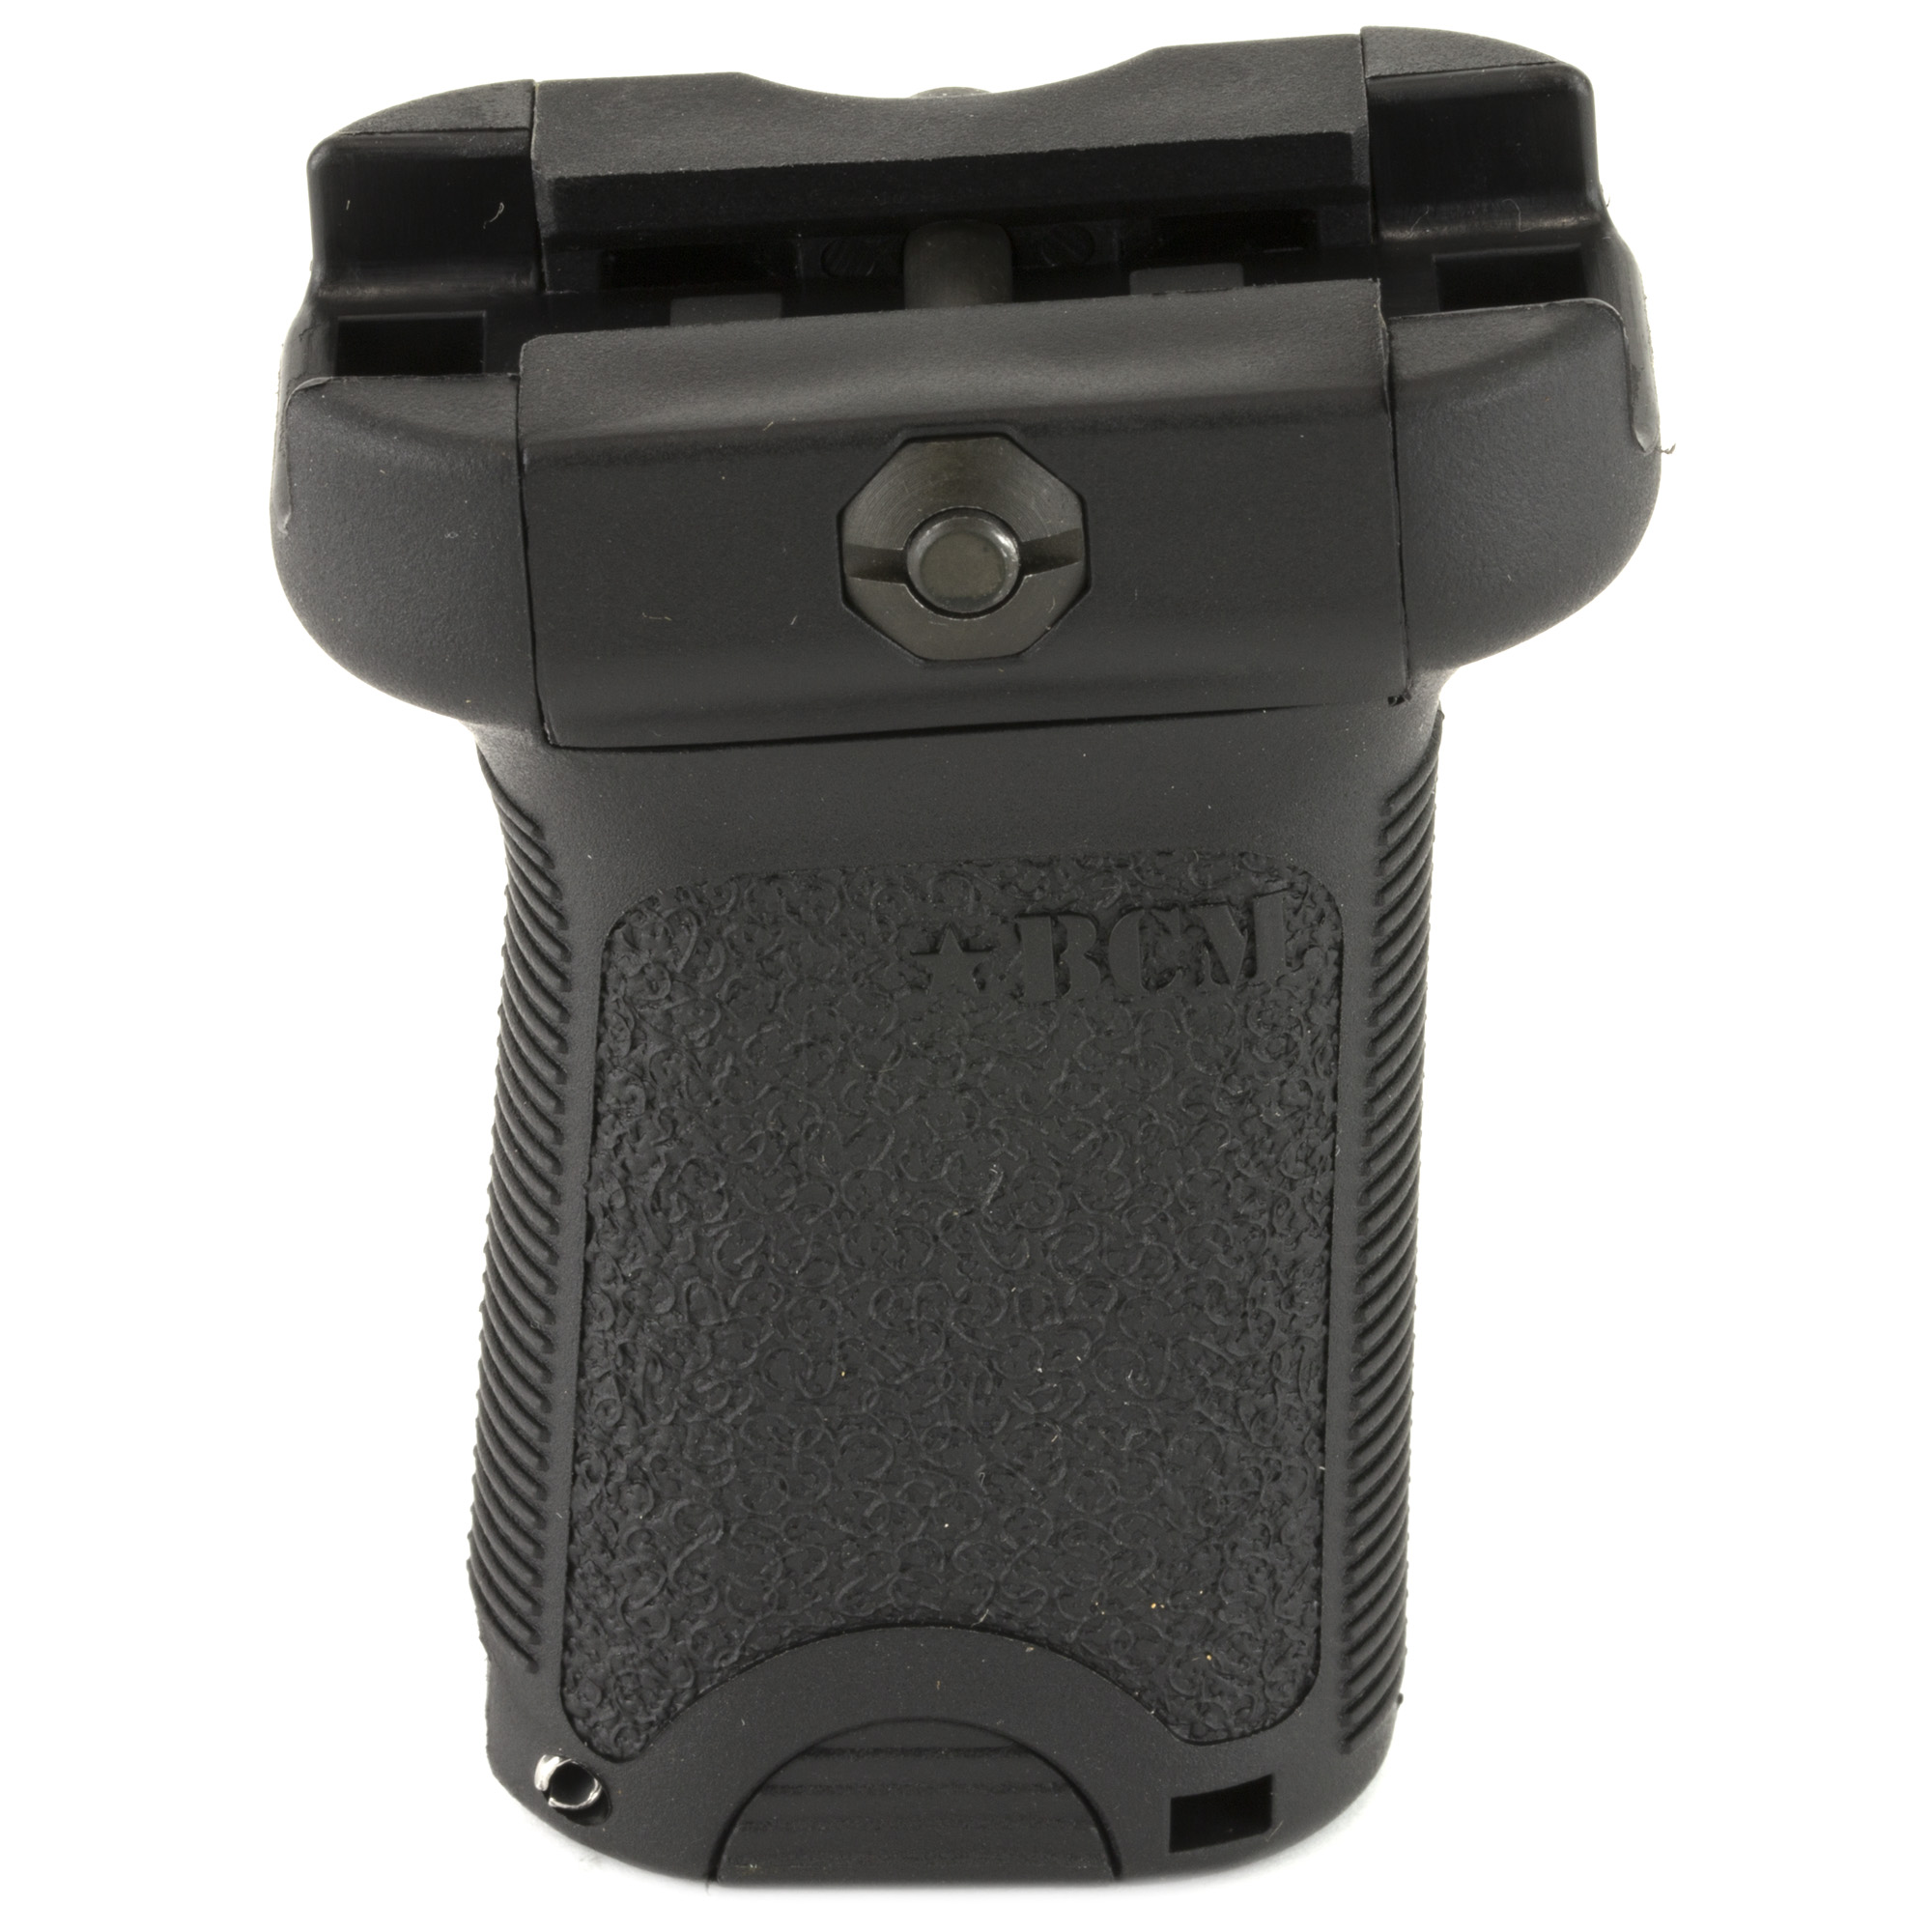 """Bravo Company's BCM Gunfighter's Vertical Grip (Short) has a low-profile length for increased mobility and decreases """"snag"""" factor. The forward angle increases the rigidity of the forearm while providing a more natural wrist angle. It can be mounted in reverse angle to increase your control when grabbing the handguard and grip. The flat sides give better yaw control to the shooter during firing and non-firing manipulations and its aggressive texture and storage volume combined with its modular design allow for improvements and adaptation in the future. It has a cross bolt design to work with improvised tools (such as a quarter) and to allow for easy adjustment or re-tightening. Reversible clamps allow the user to set up fasteners to reside on either side and spring-loaded clamps to make installation and removal easier. Manufactured from high quality"""" impact resistant polymers and made in the USA."""